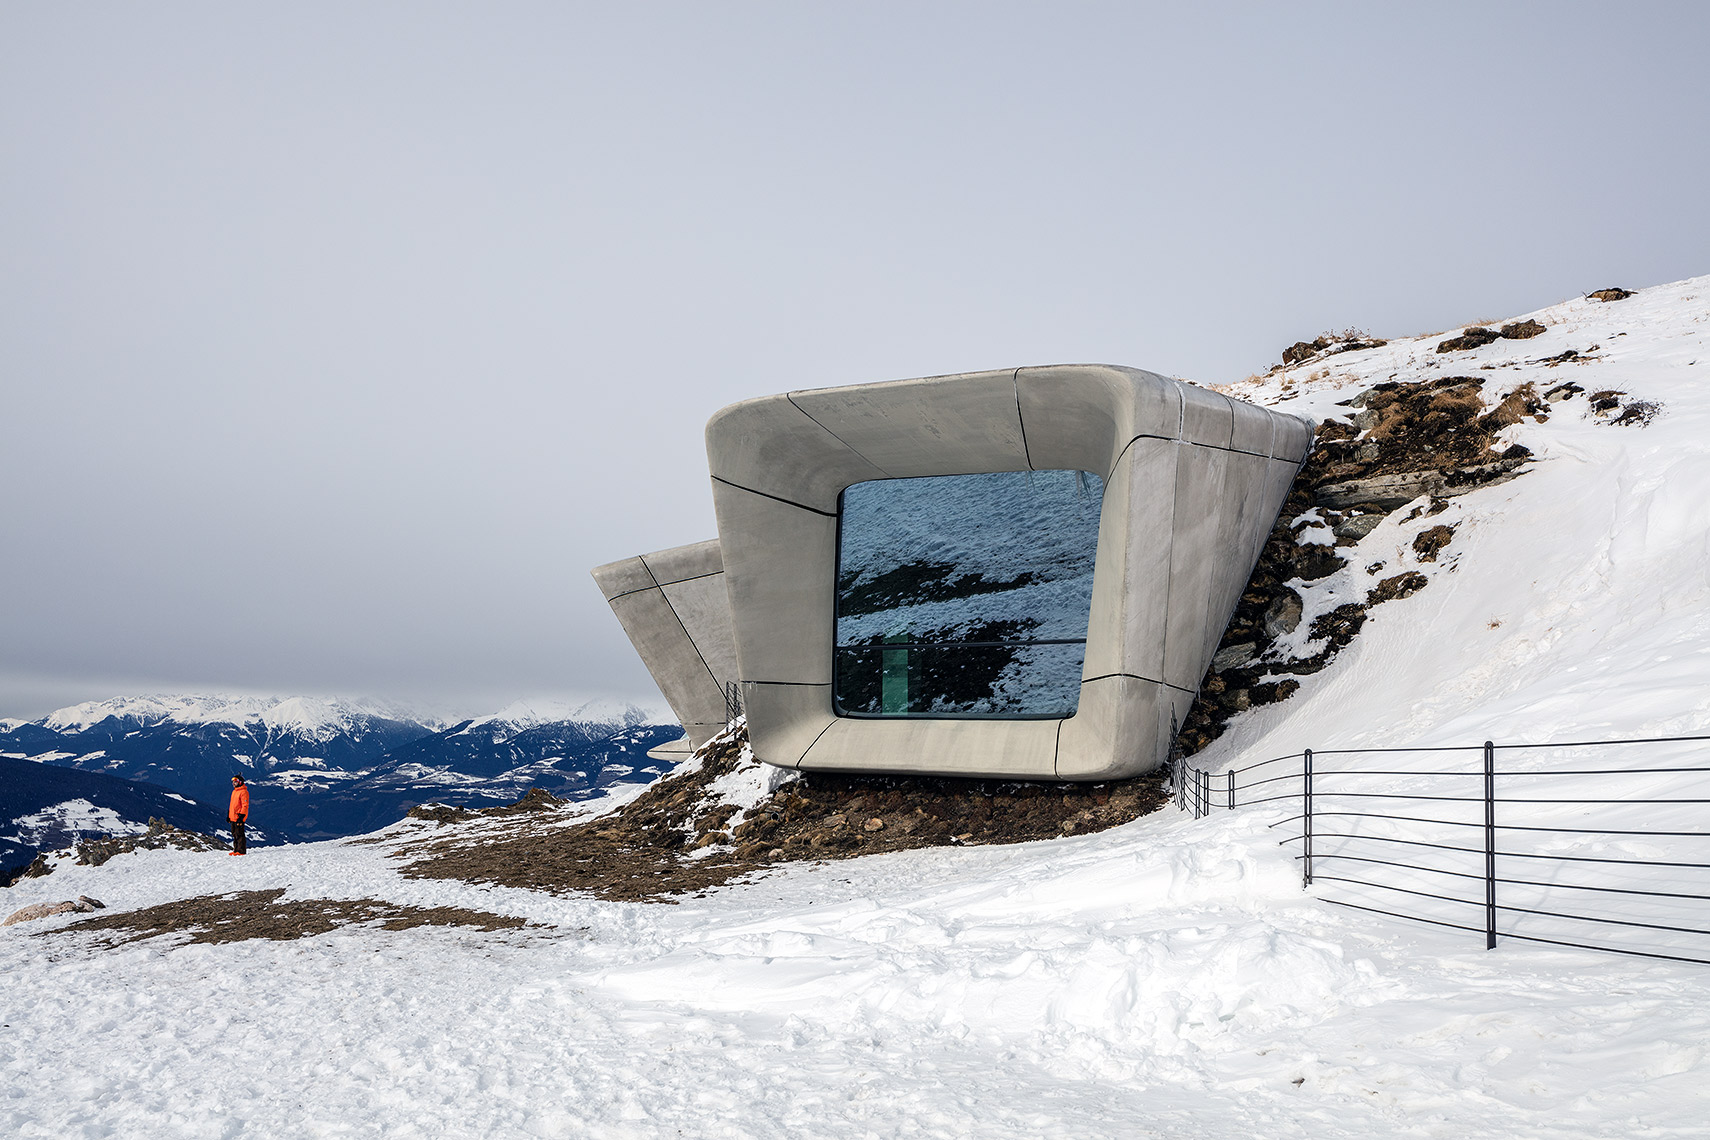 Exterior of Mountain Museum Corones, Peter A. Sellar Architectural Photographer